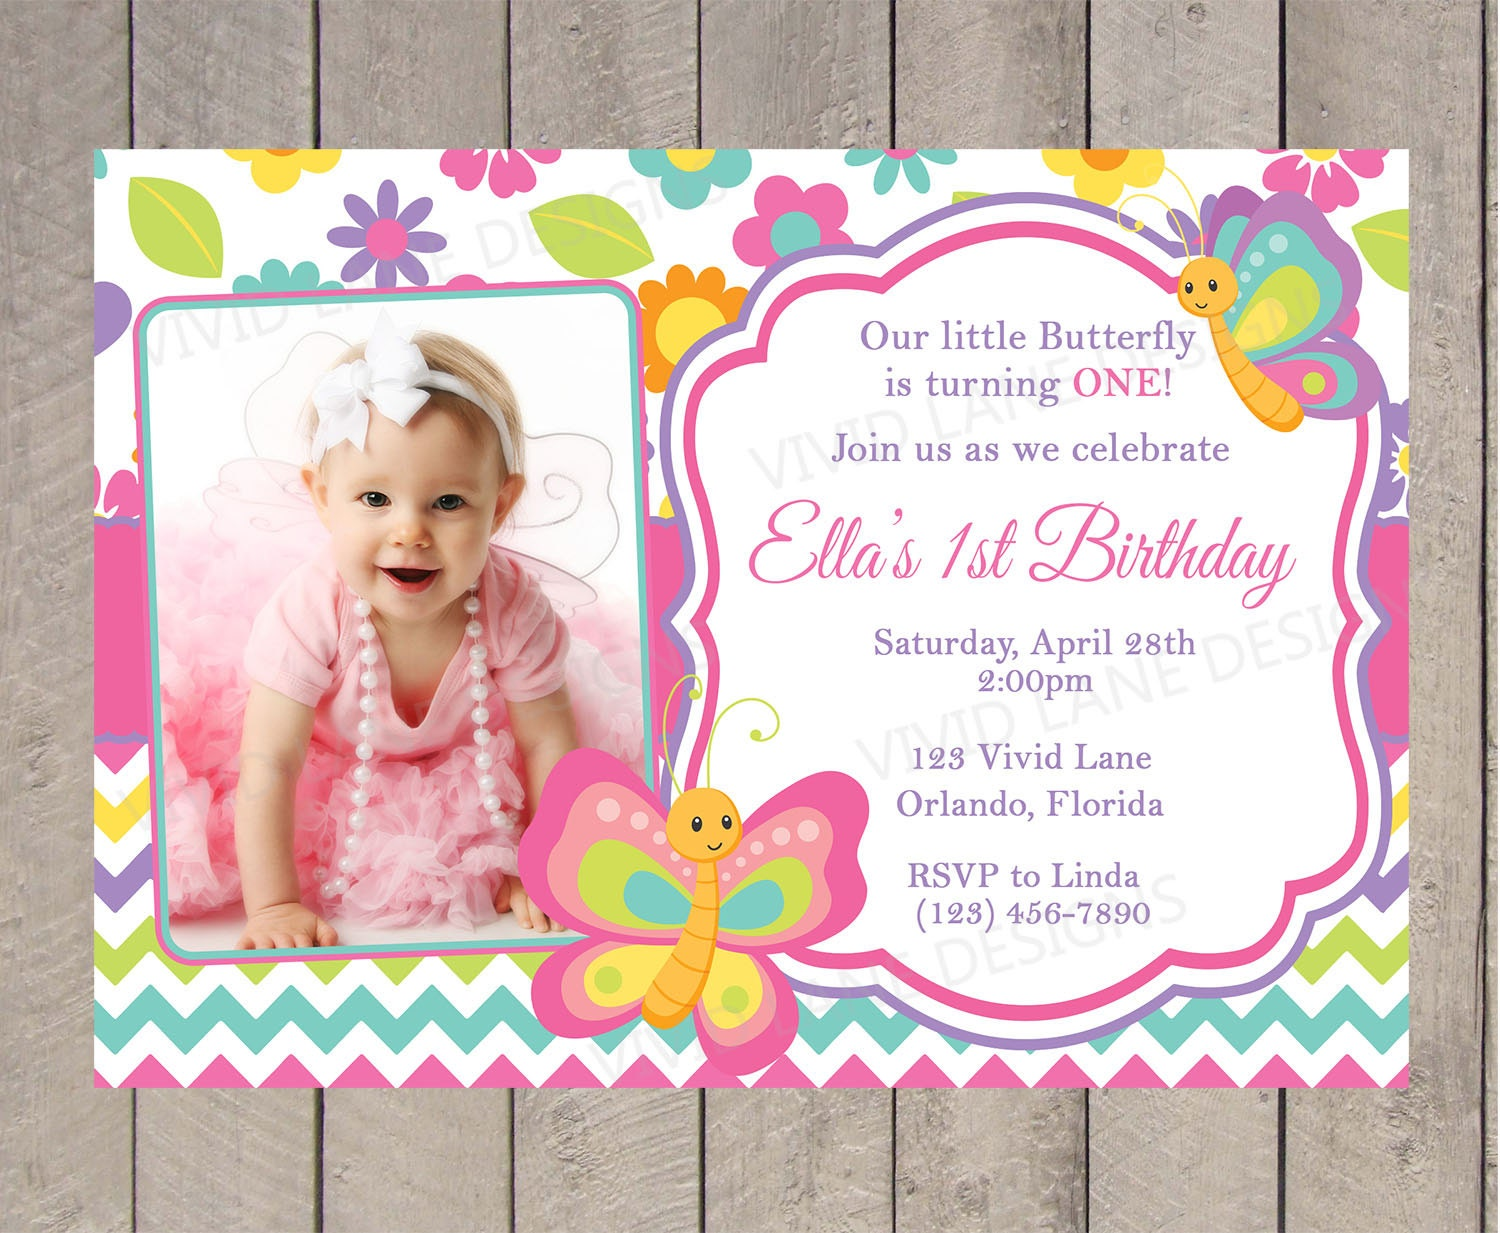 Luxury Butterfly Birthday Invites Sketch - Invitation Card Ideas ...